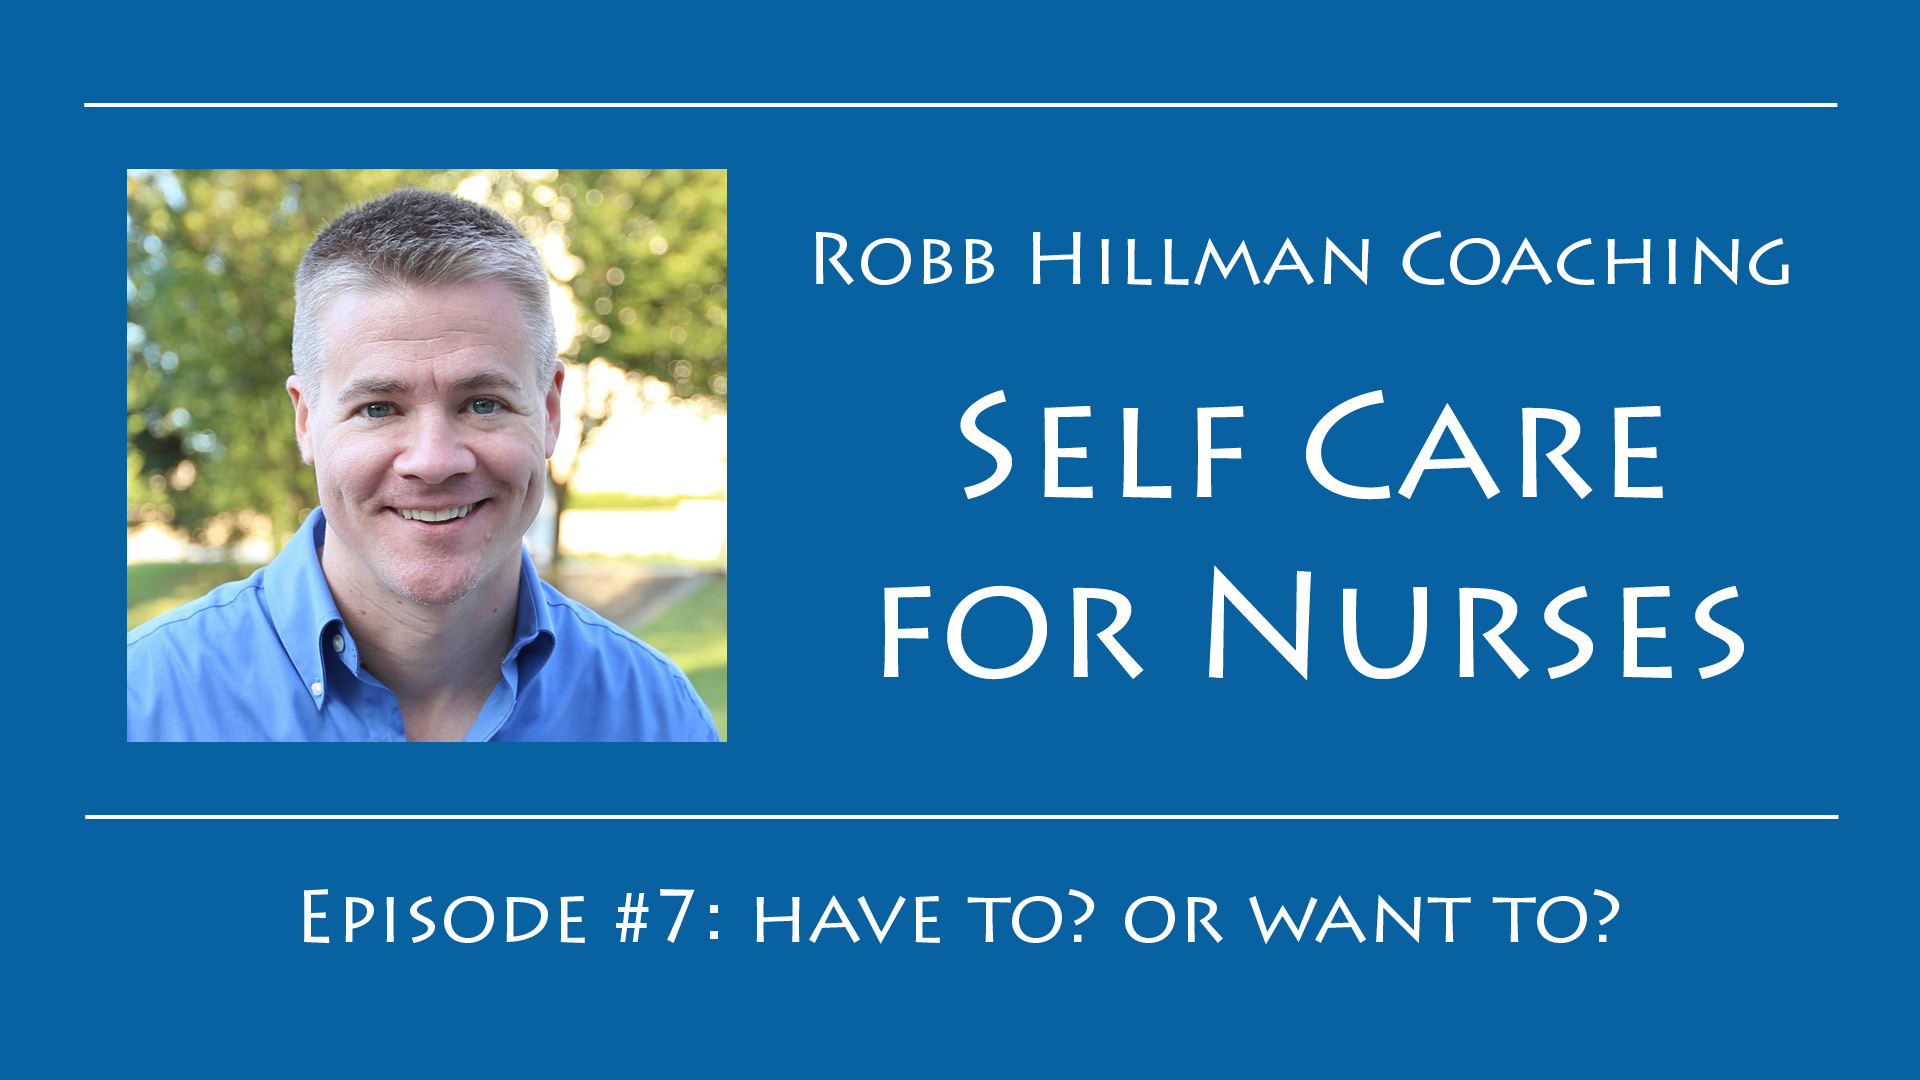 Self care for nurses episode 7